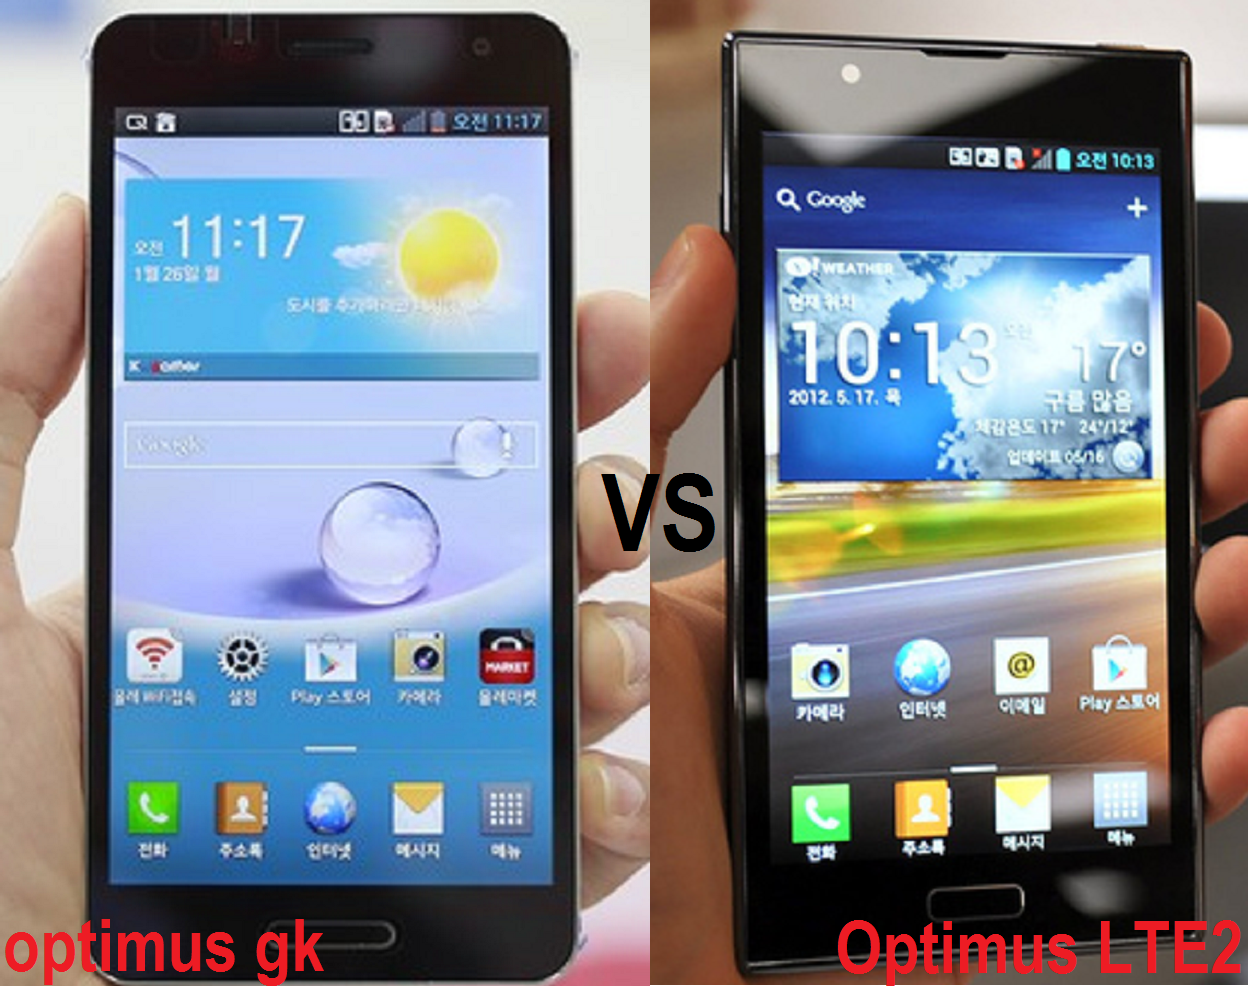 LG Optimus GK brings things back down to a more manageable